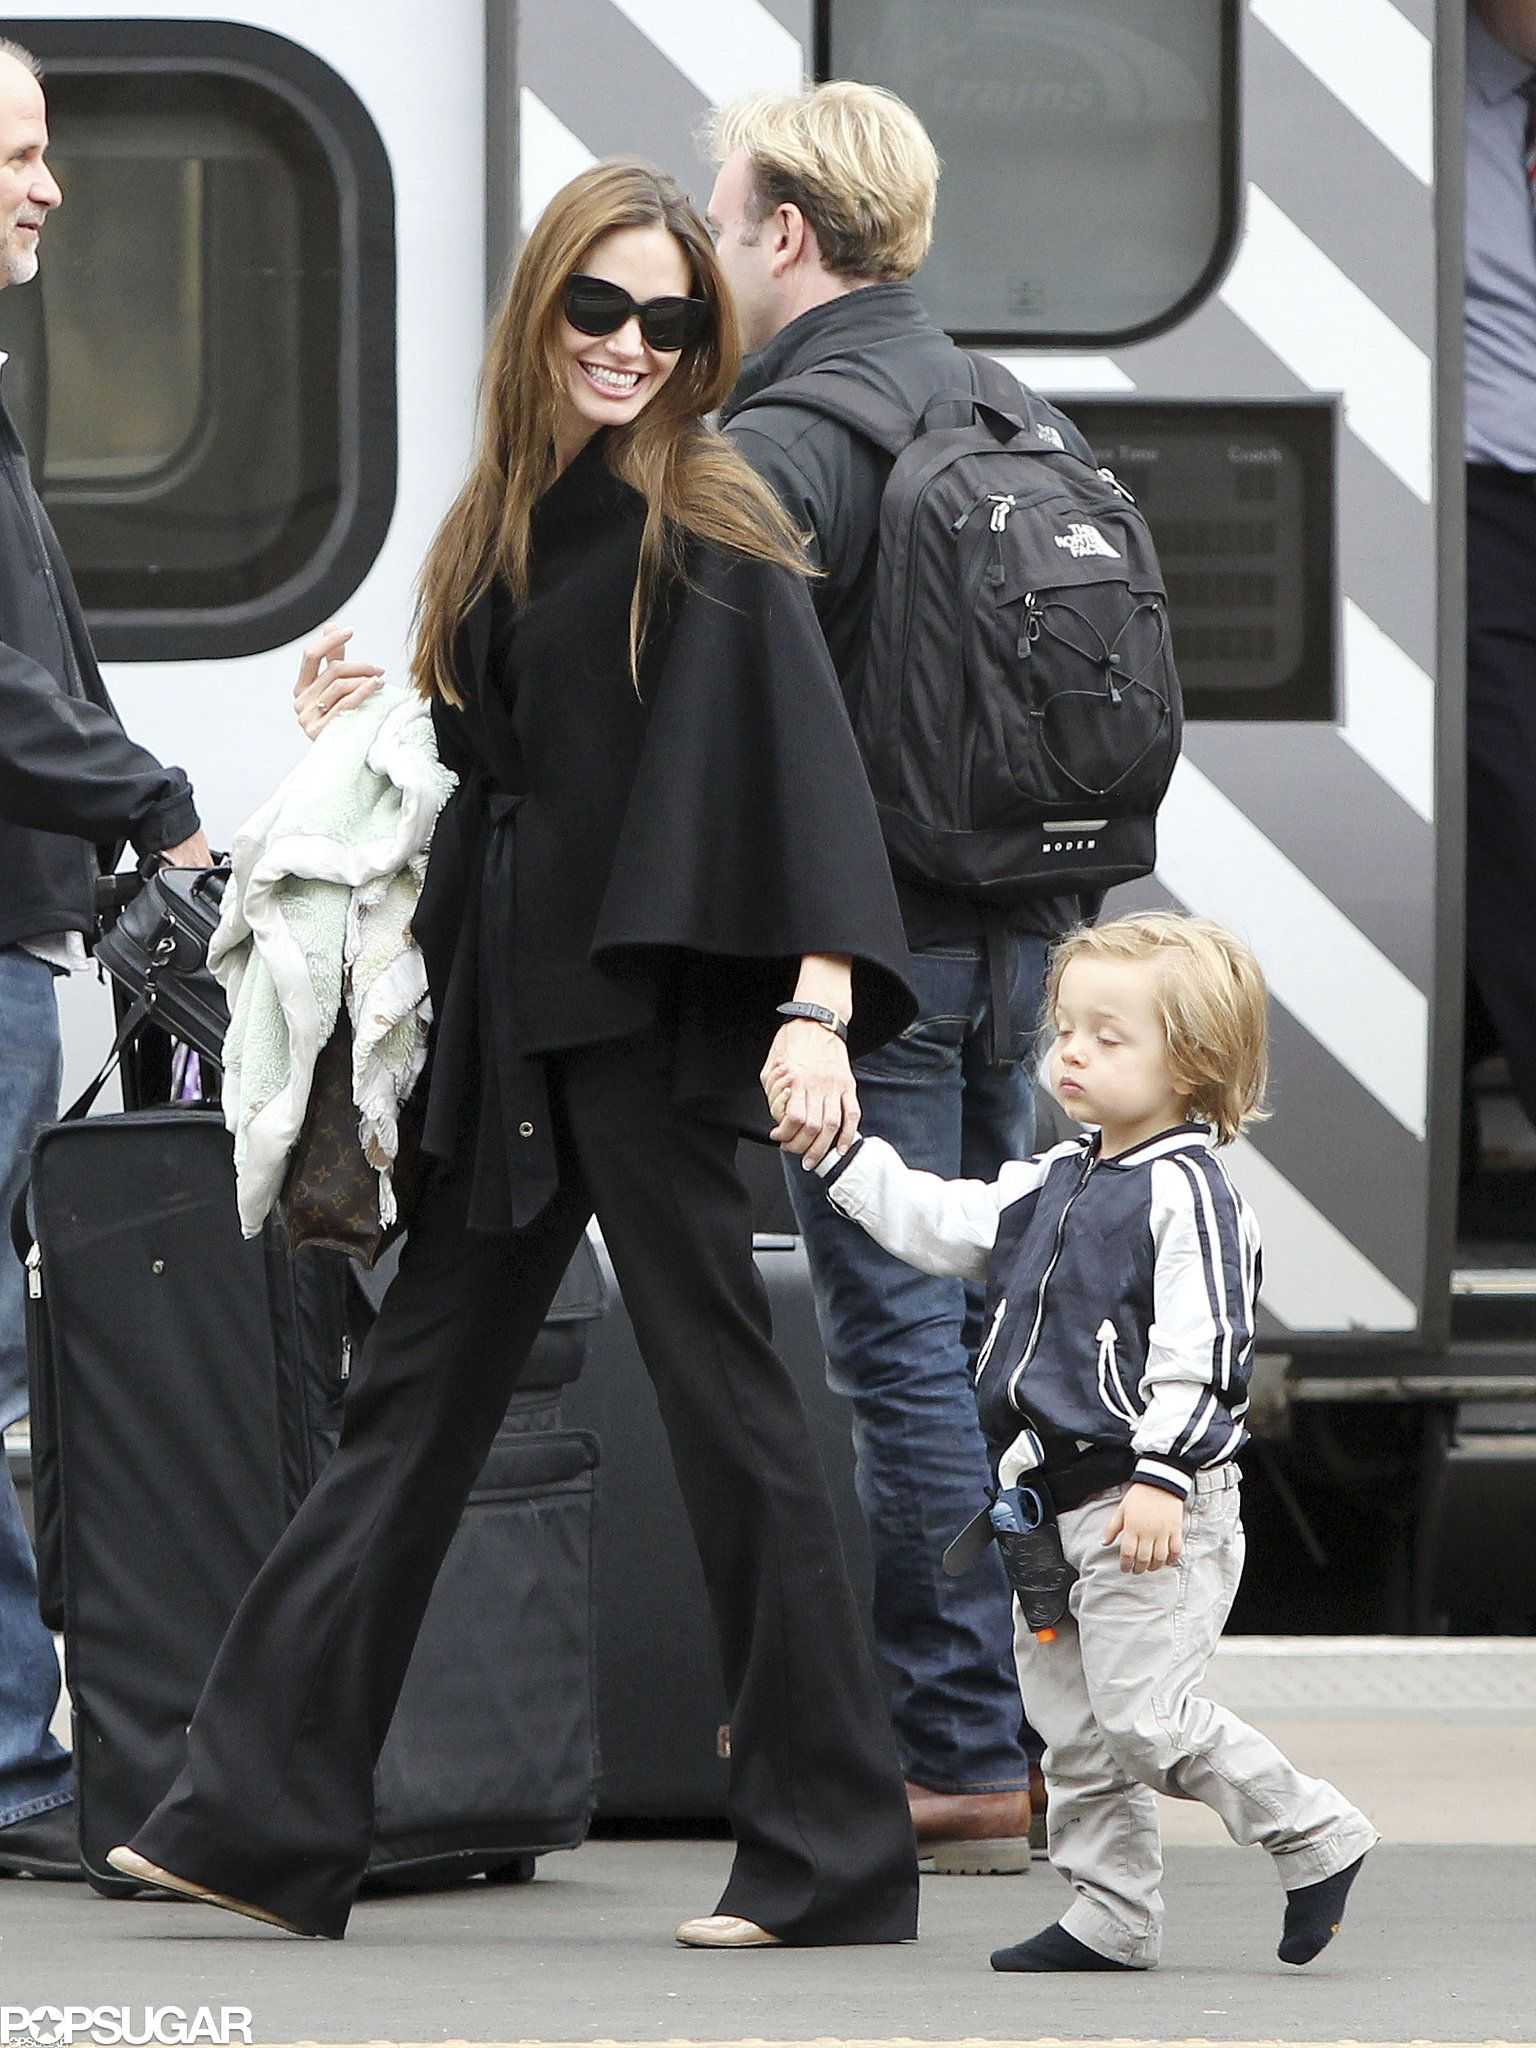 Angelina Jolie held Knox's hand in Scotland in August 2011.